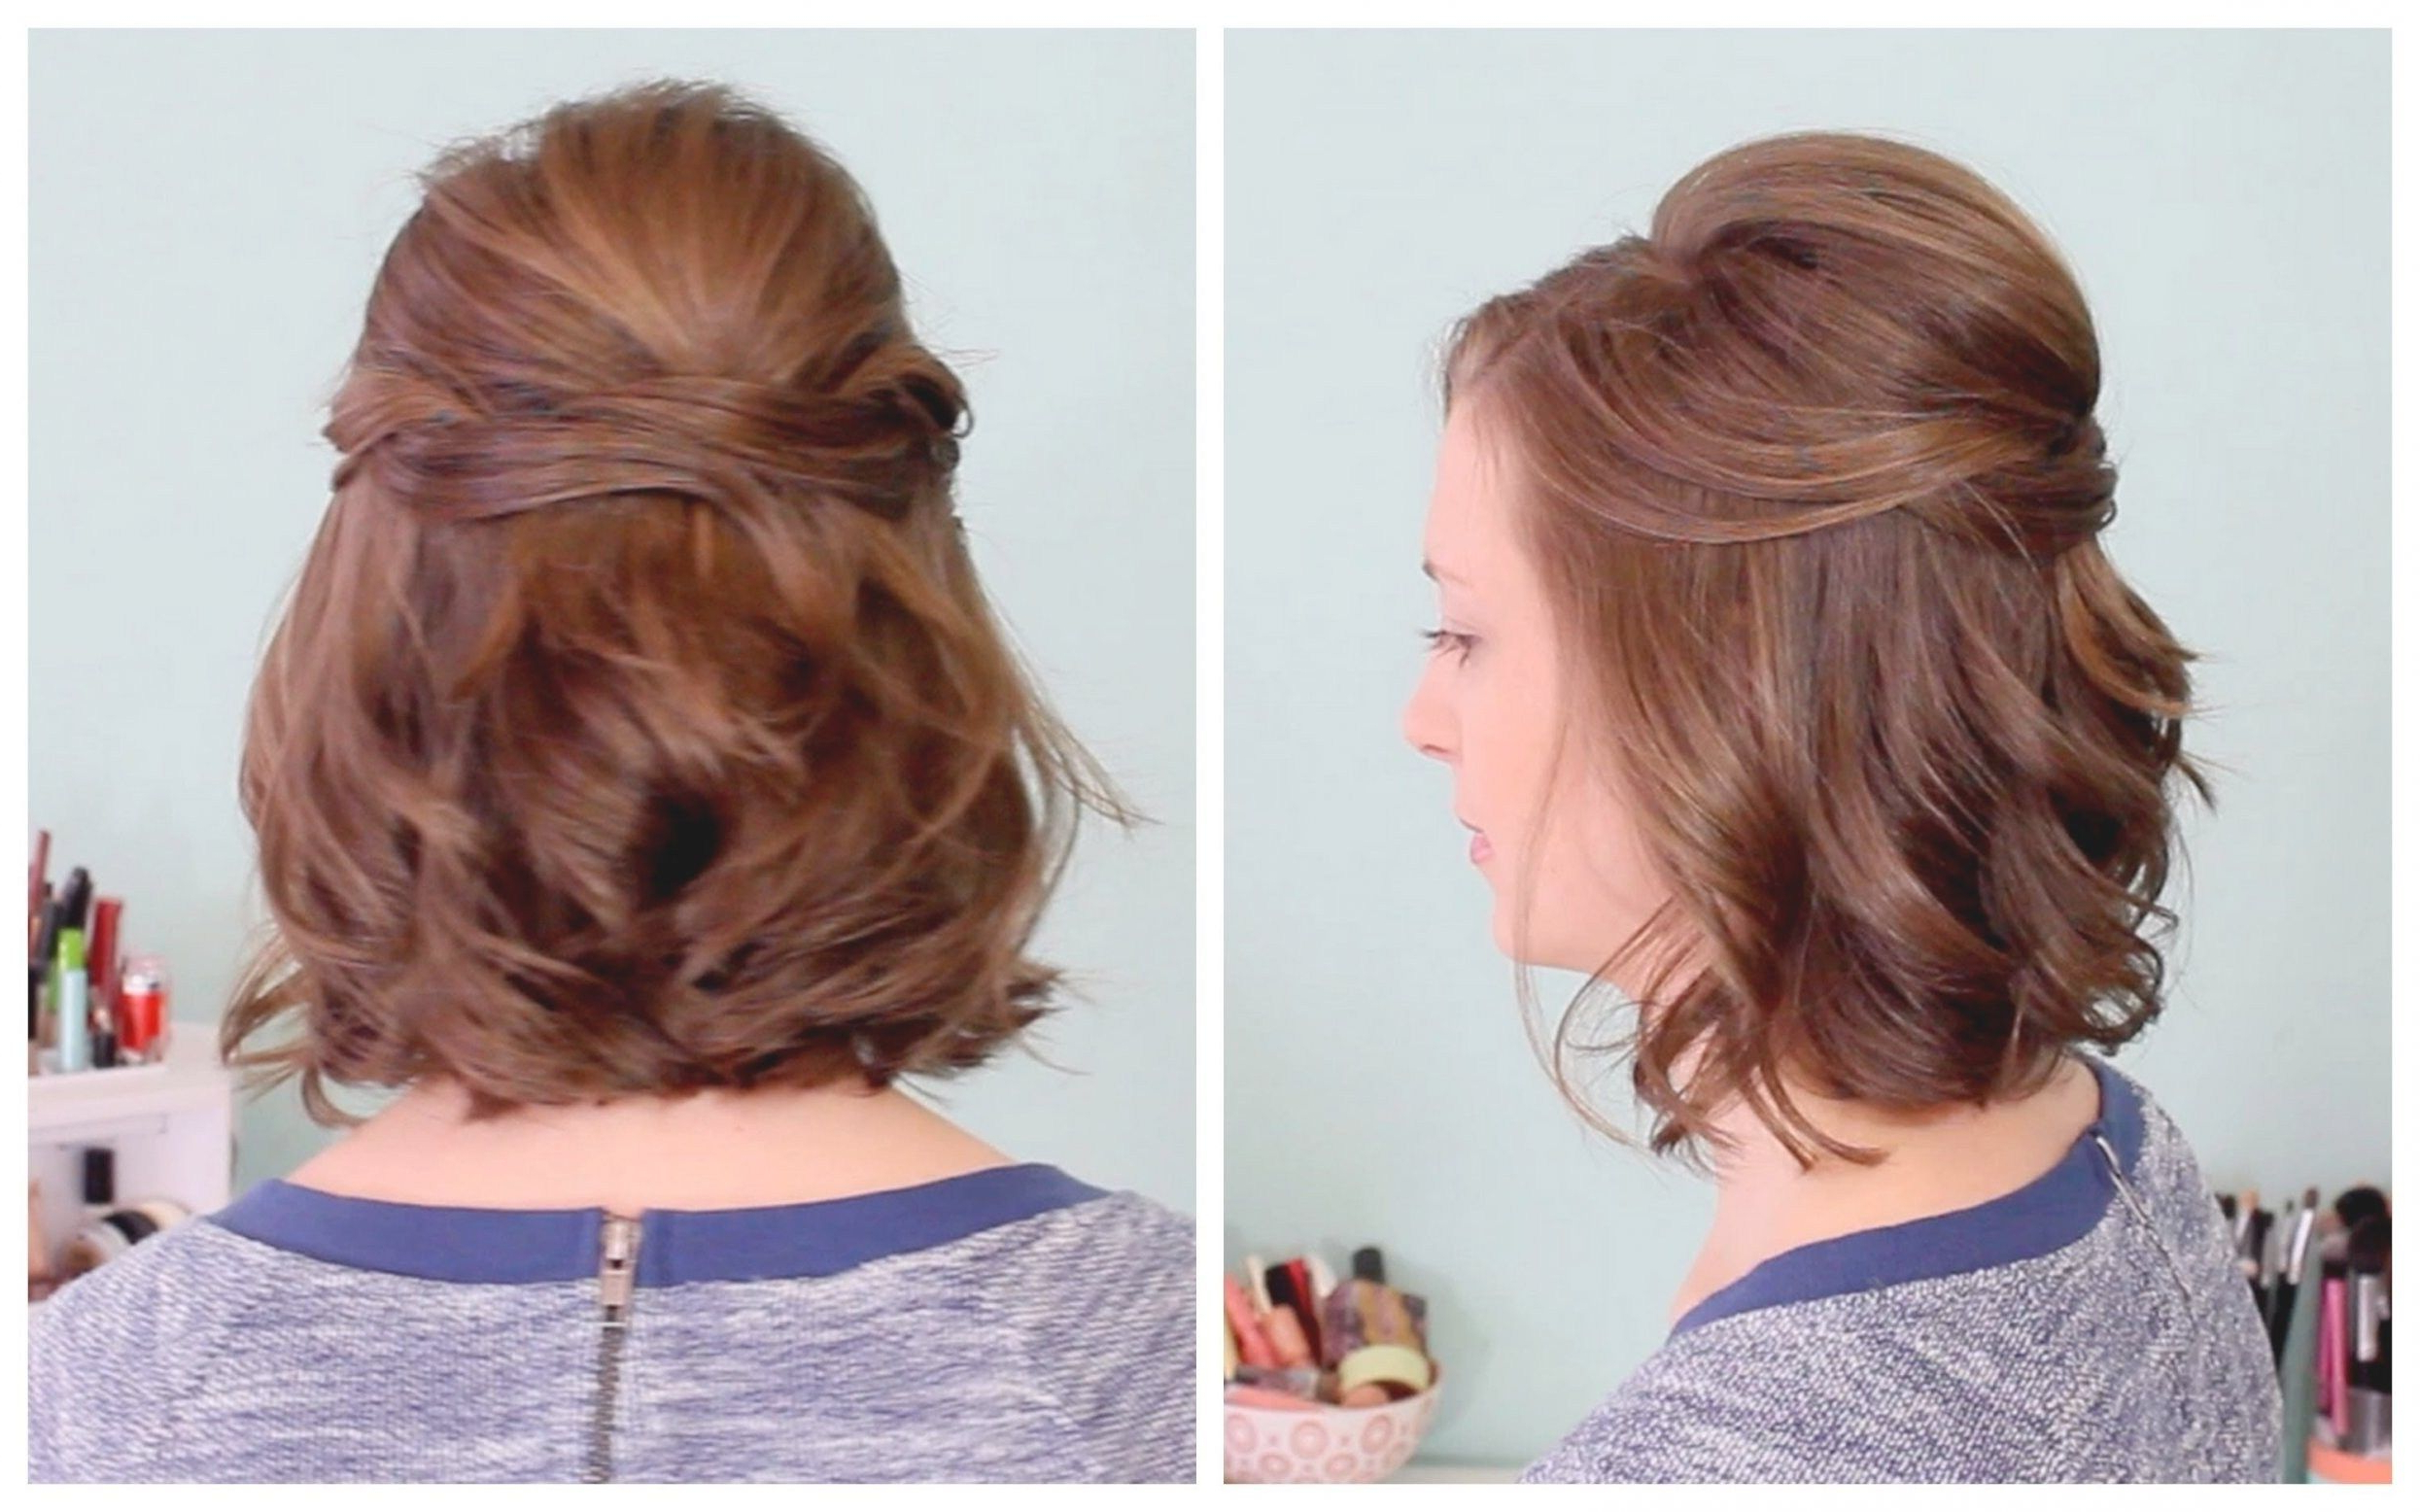 Half Up Half Down Hairstyles For Wedding Guest | Wedding With Hairstyles For Short Hair Wedding Guest (View 10 of 25)